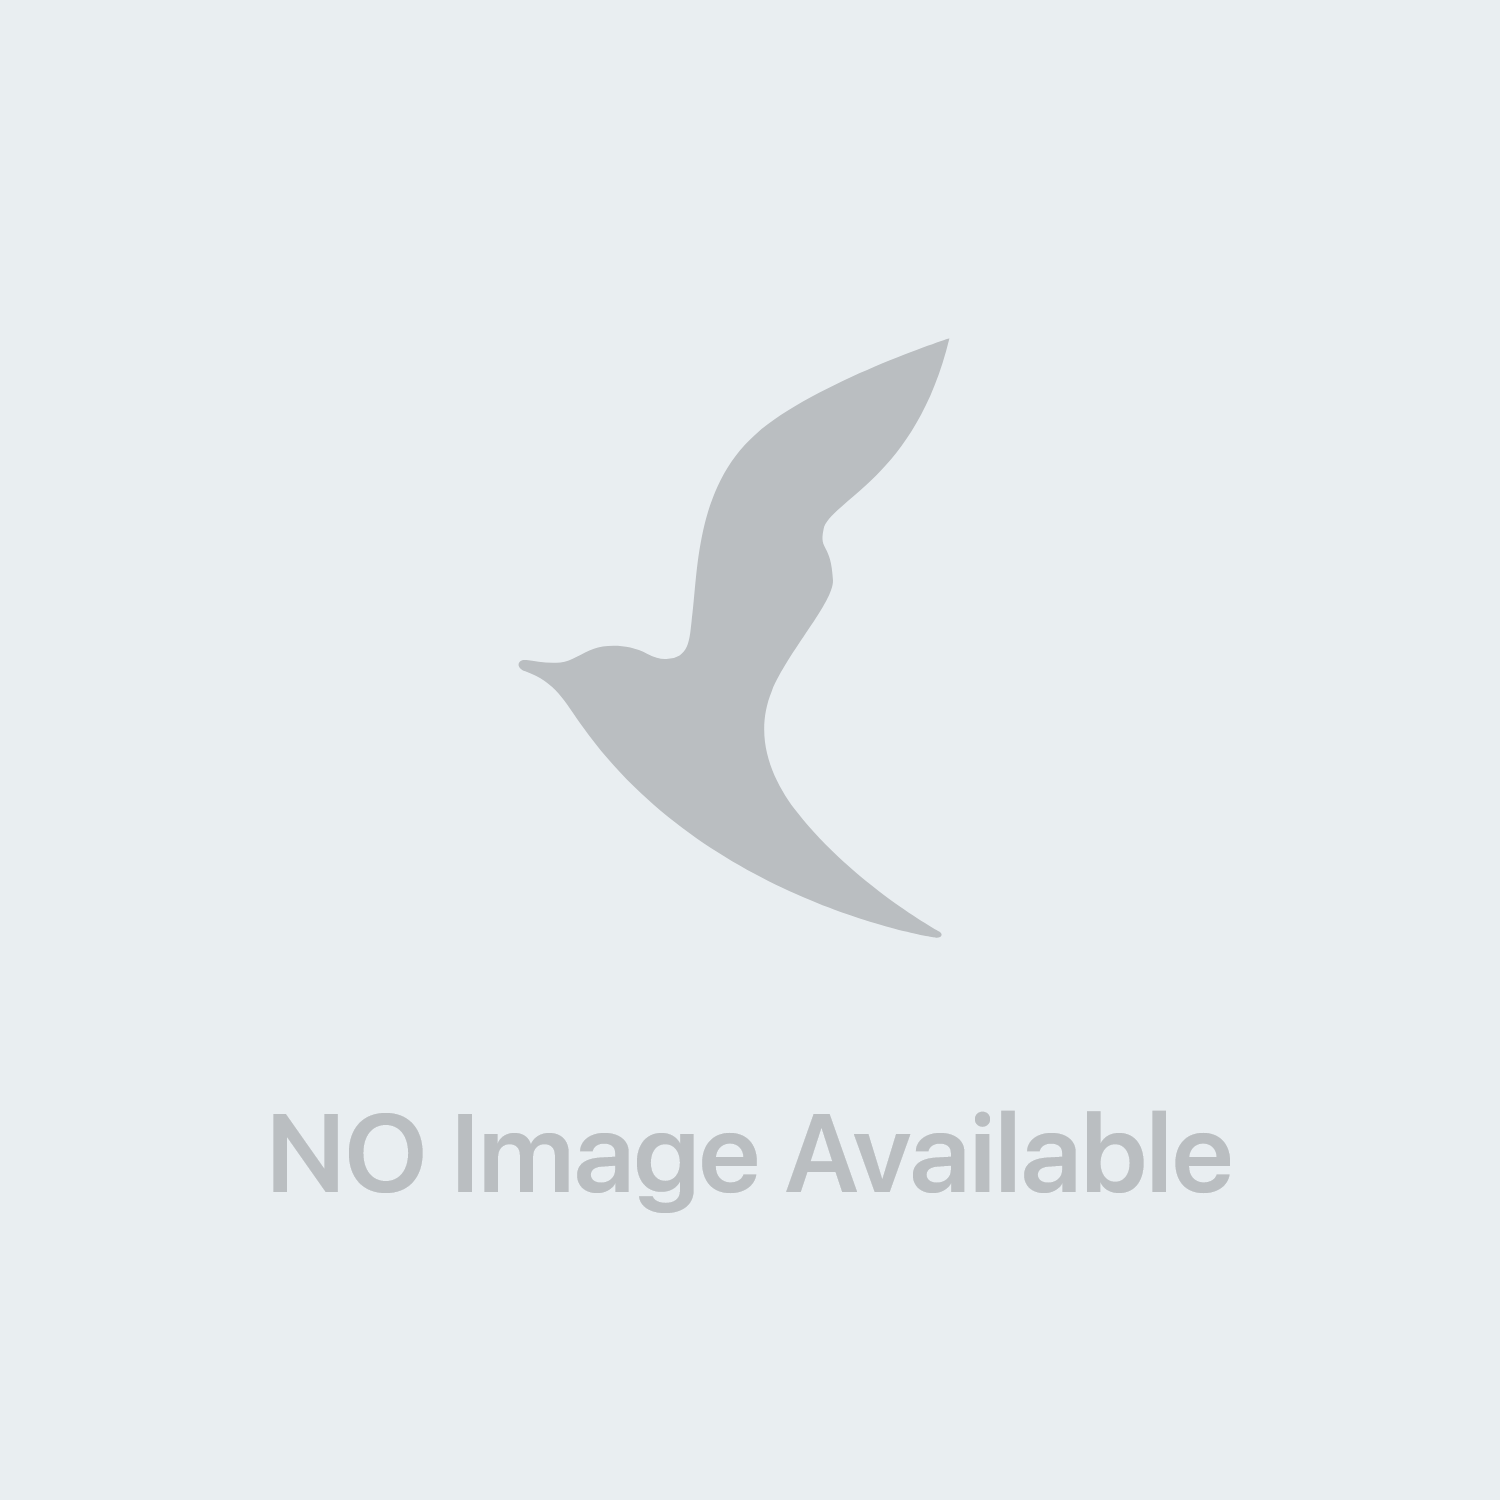 Acutil Multivitaminico Integratore Energetico 30 Compresse Rivestite